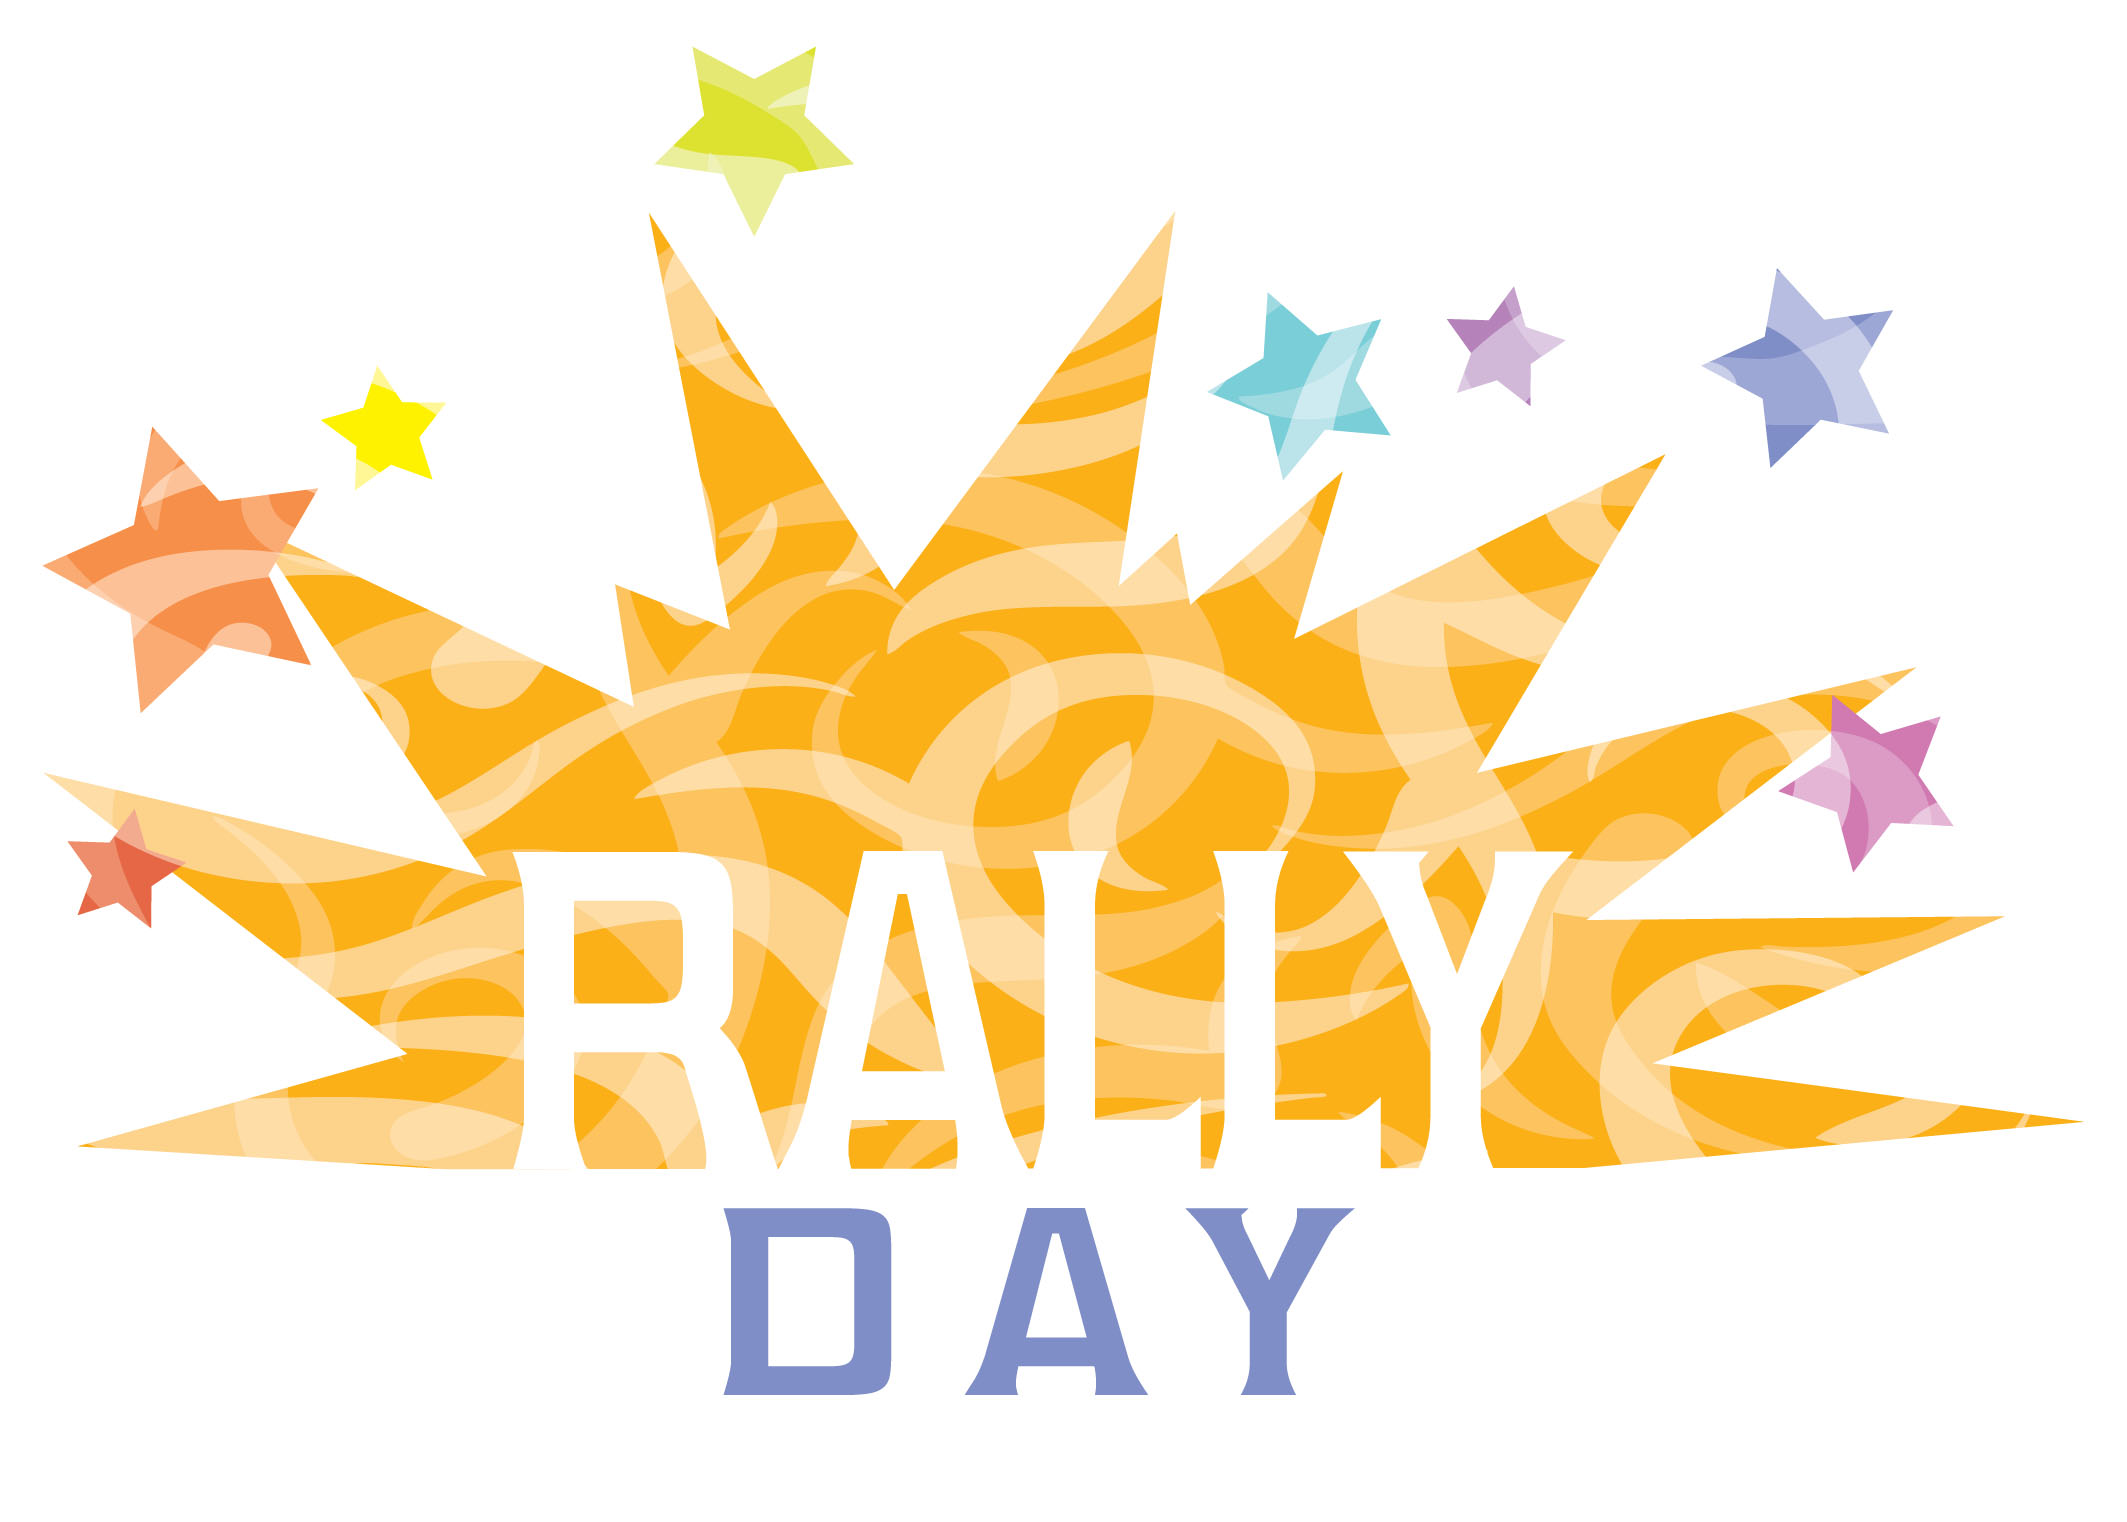 Rally-day.jpg 2,127×1,522 pixels